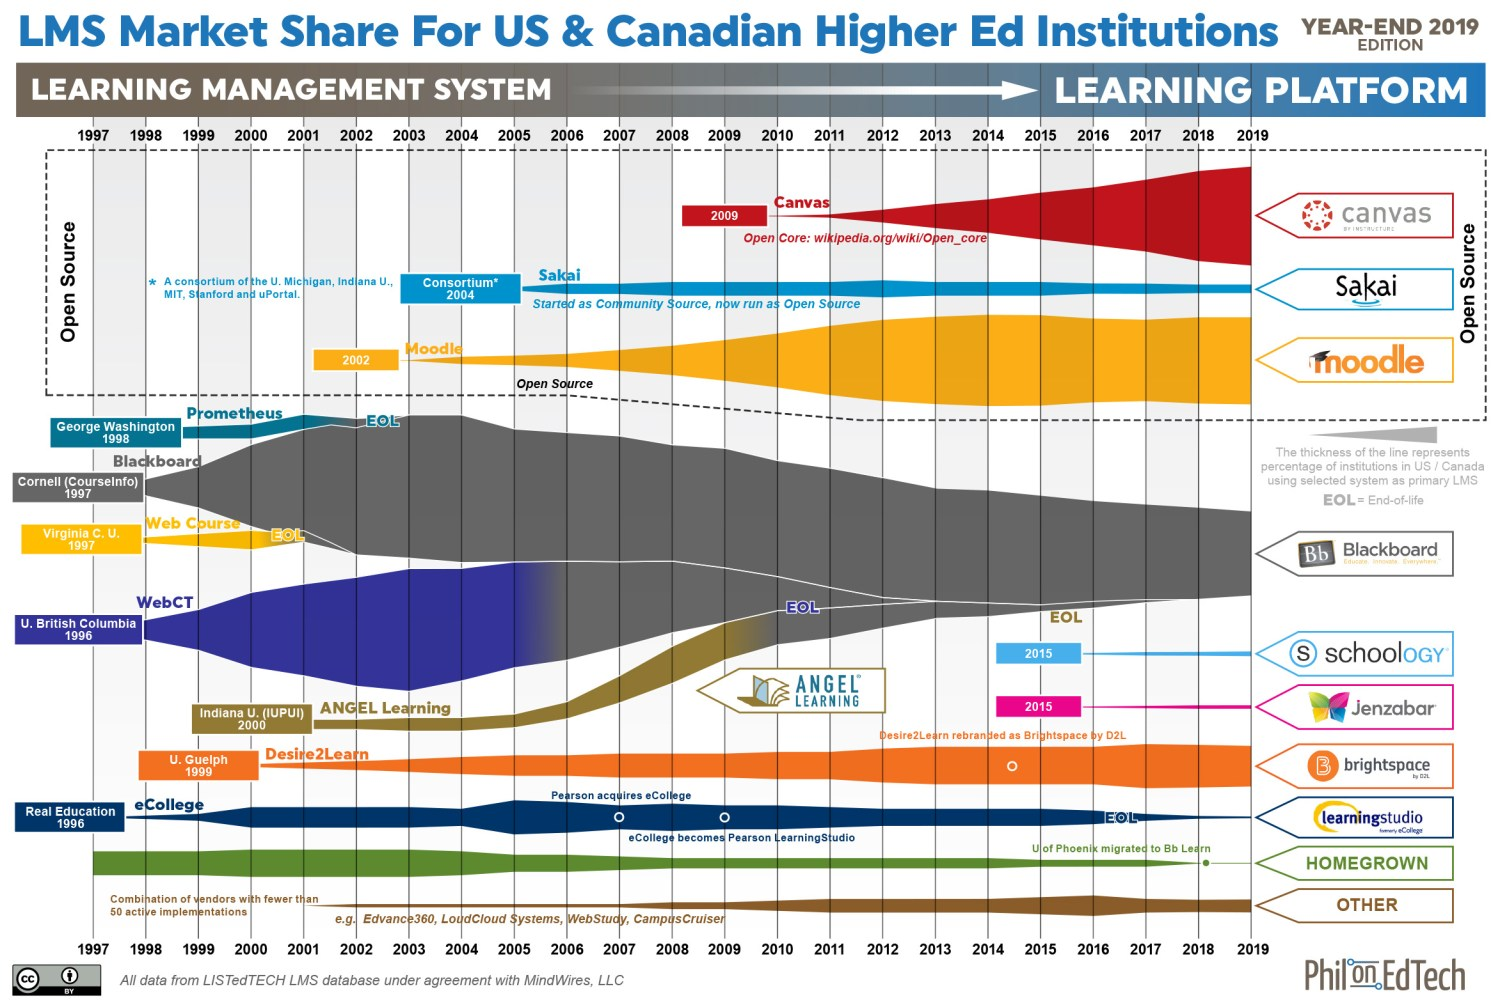 Sankey diagram of LMS market, with width of bands representing percentage of higher ed institutions using each LMS as a primary system